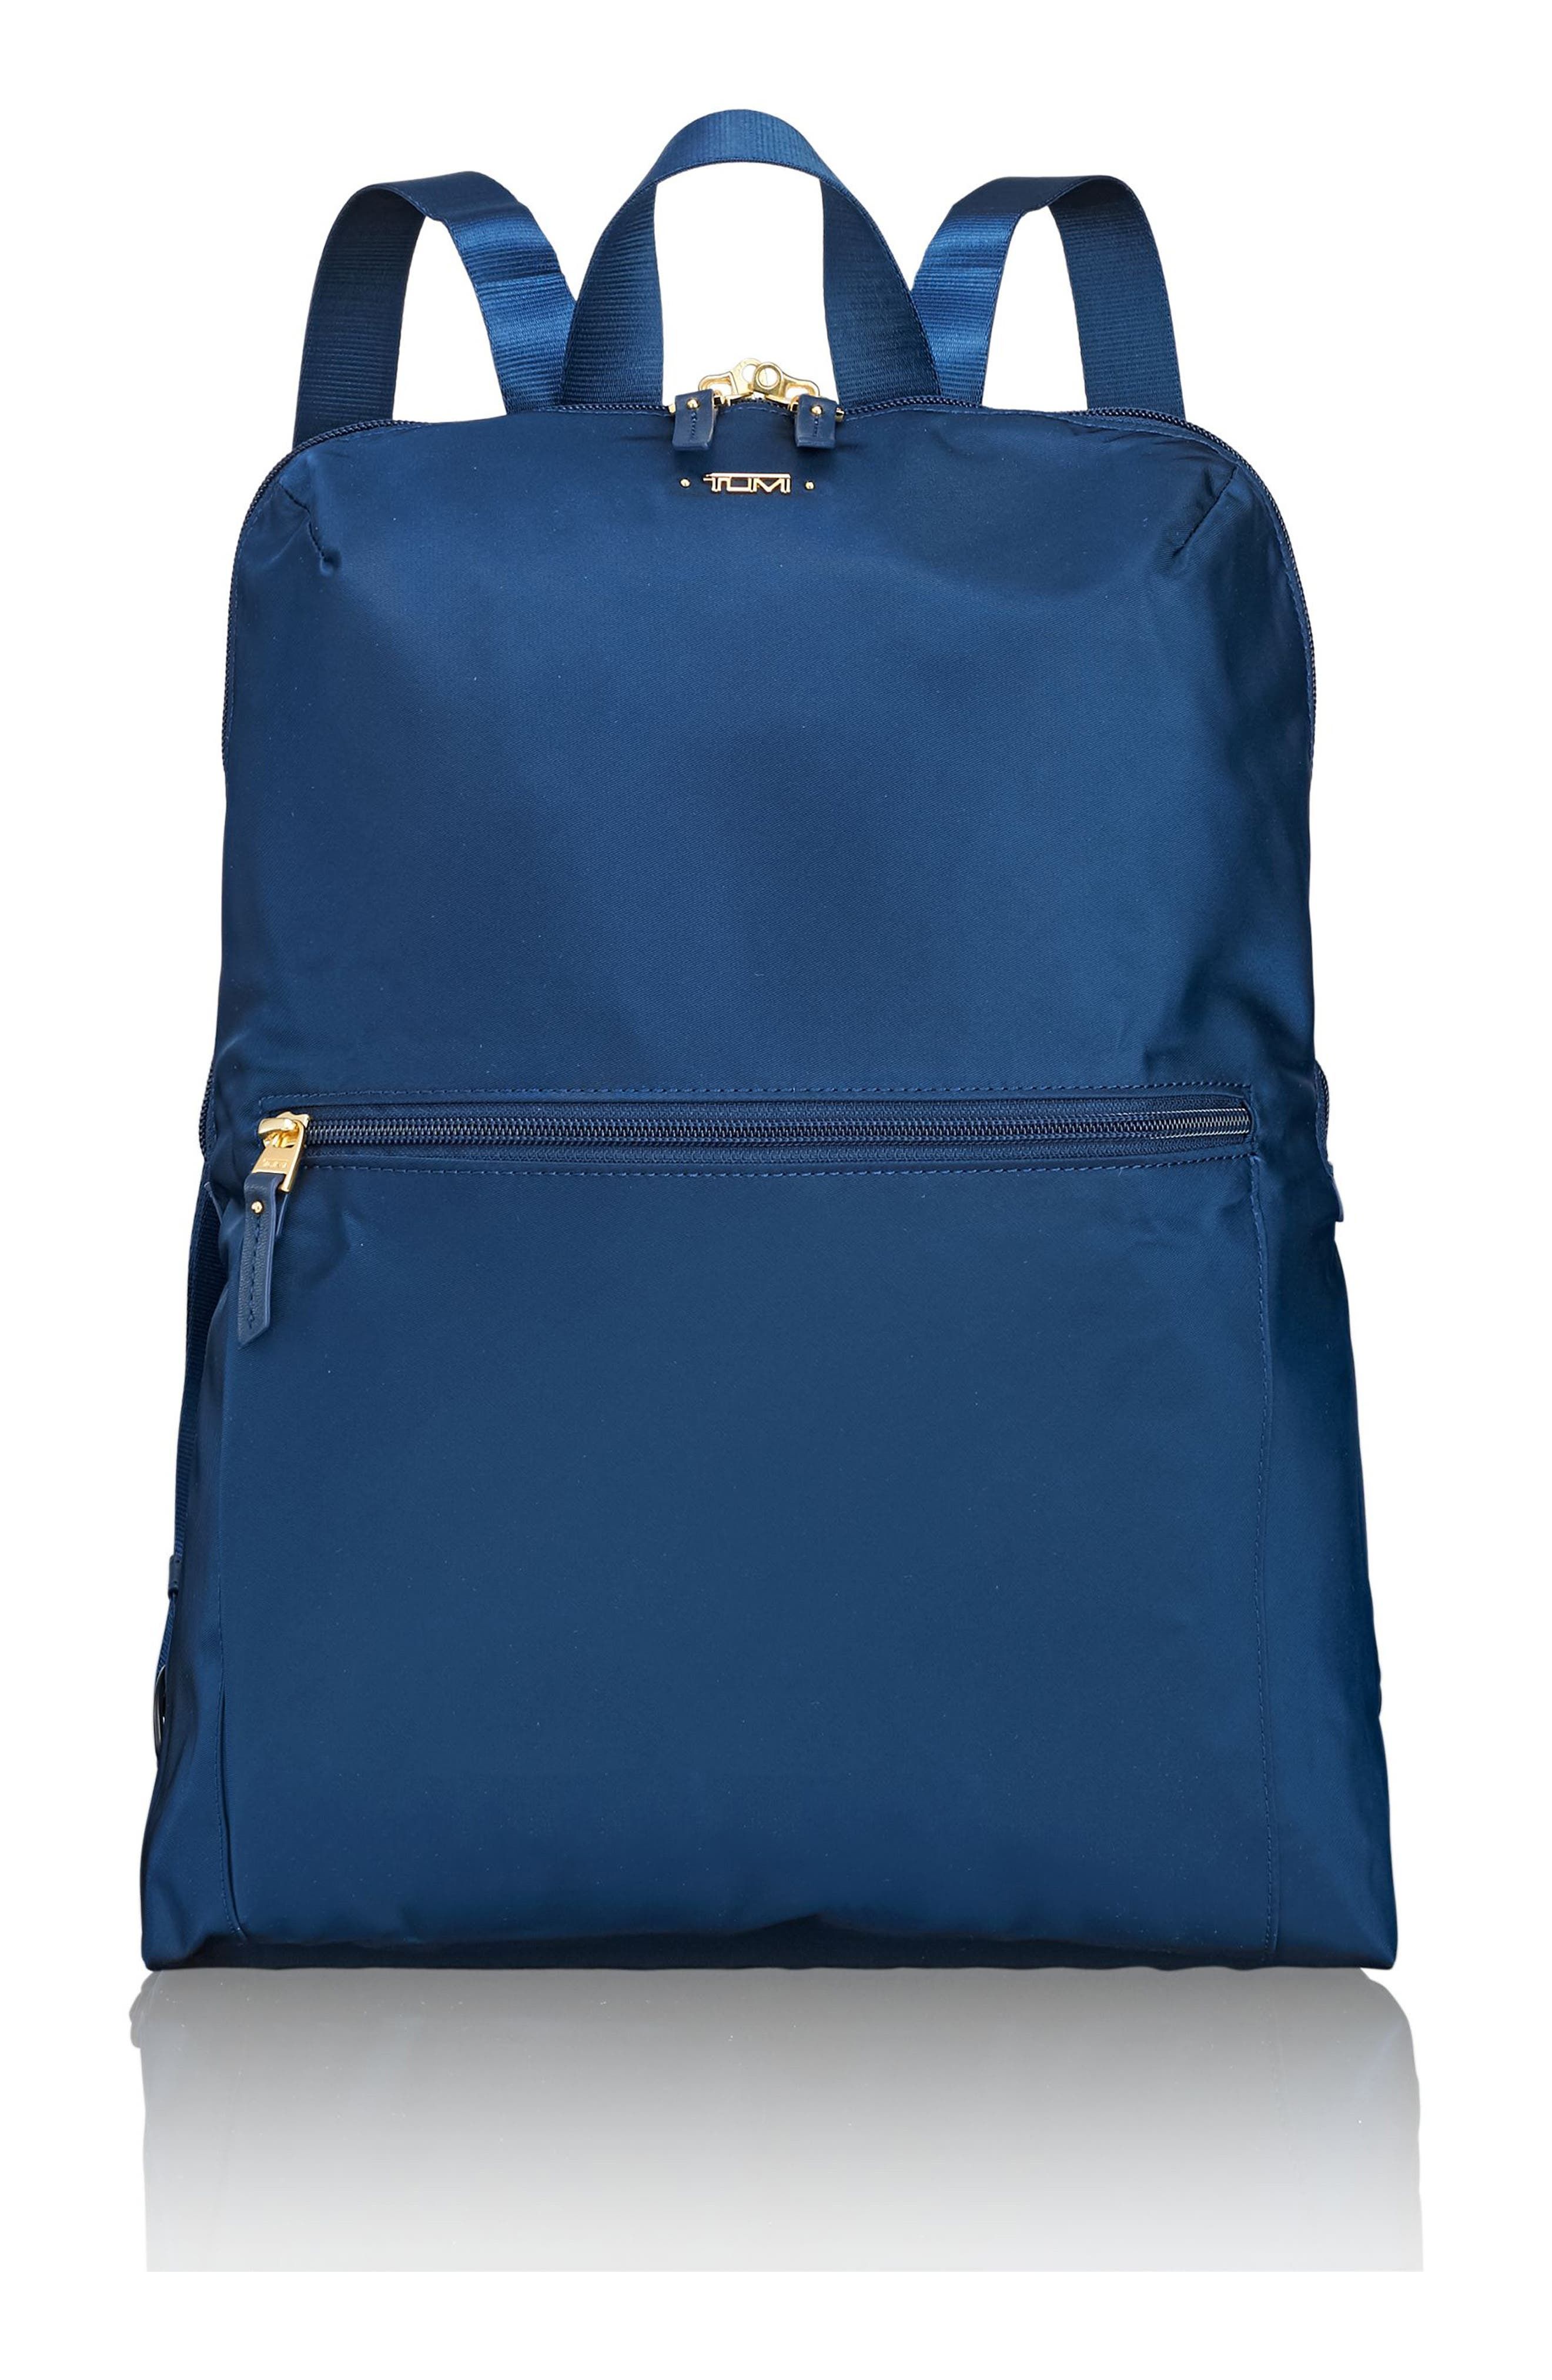 Just in Case<sup>®</sup> Back-Up Tavel Bag,                             Main thumbnail 1, color,                             Ocean Blue